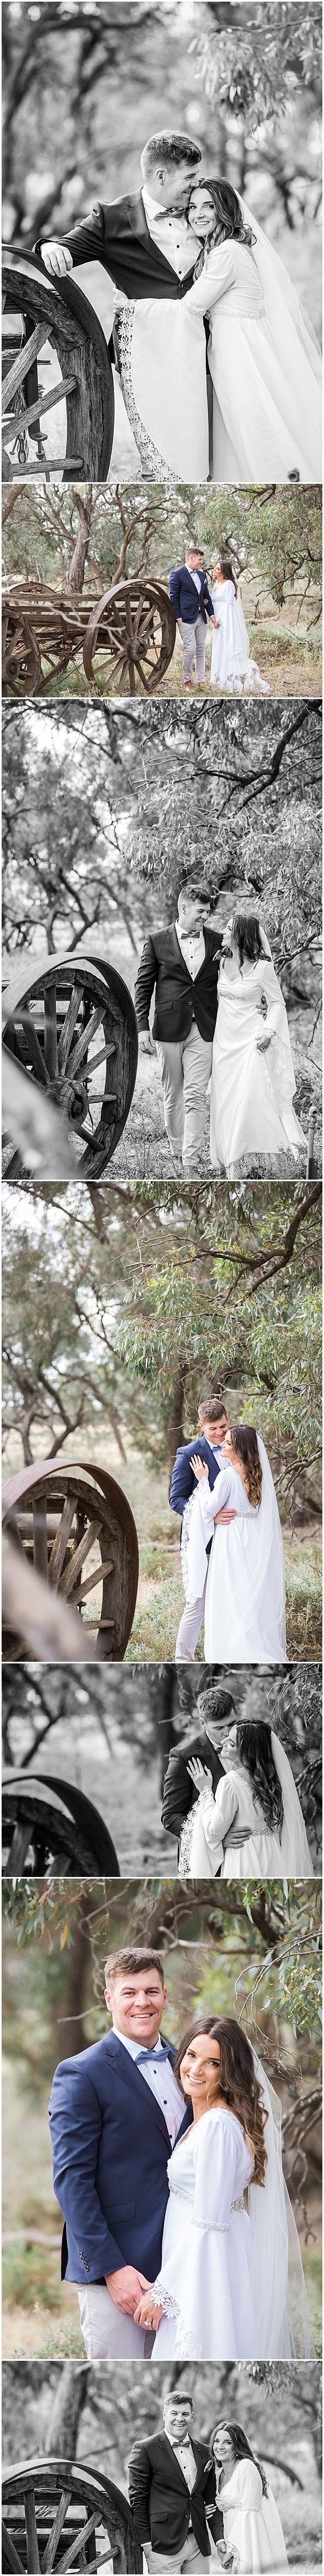 Bendigo Wedding Photographer_0015